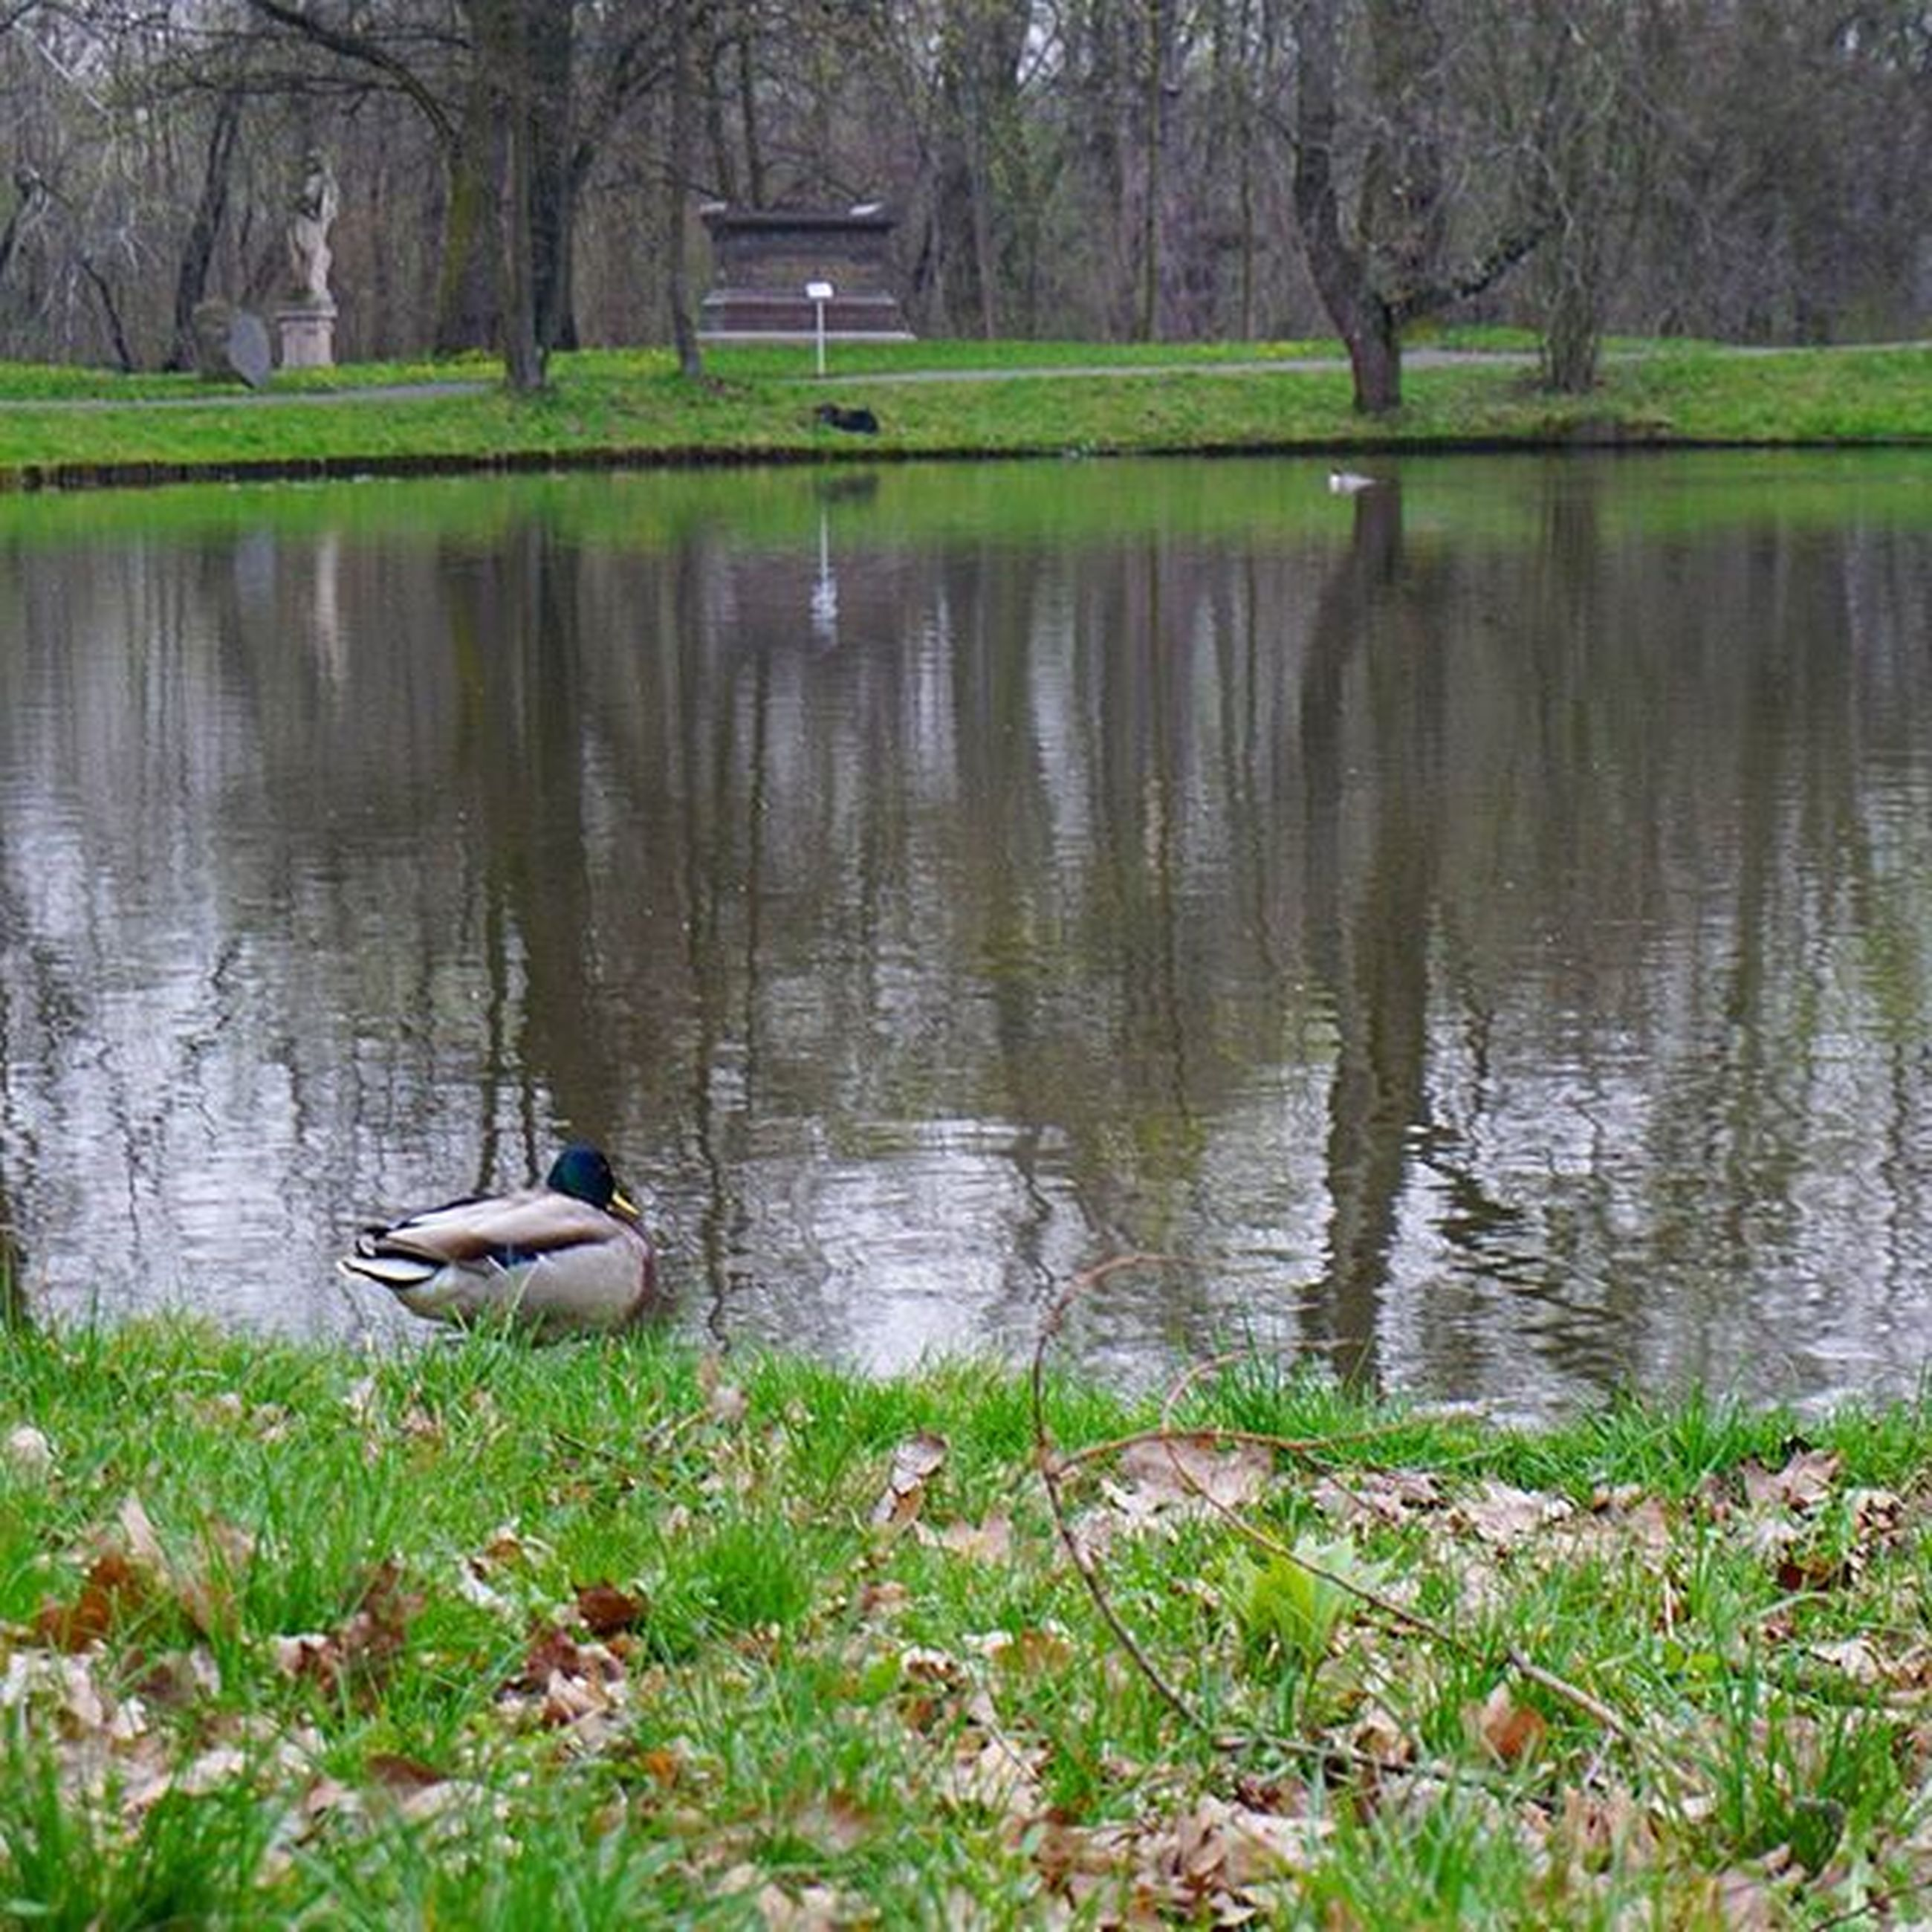 water, lake, grass, reflection, tree, bird, duck, wildlife, tranquility, animal themes, animals in the wild, nature, tranquil scene, green color, lakeshore, beauty in nature, pond, growth, day, outdoors